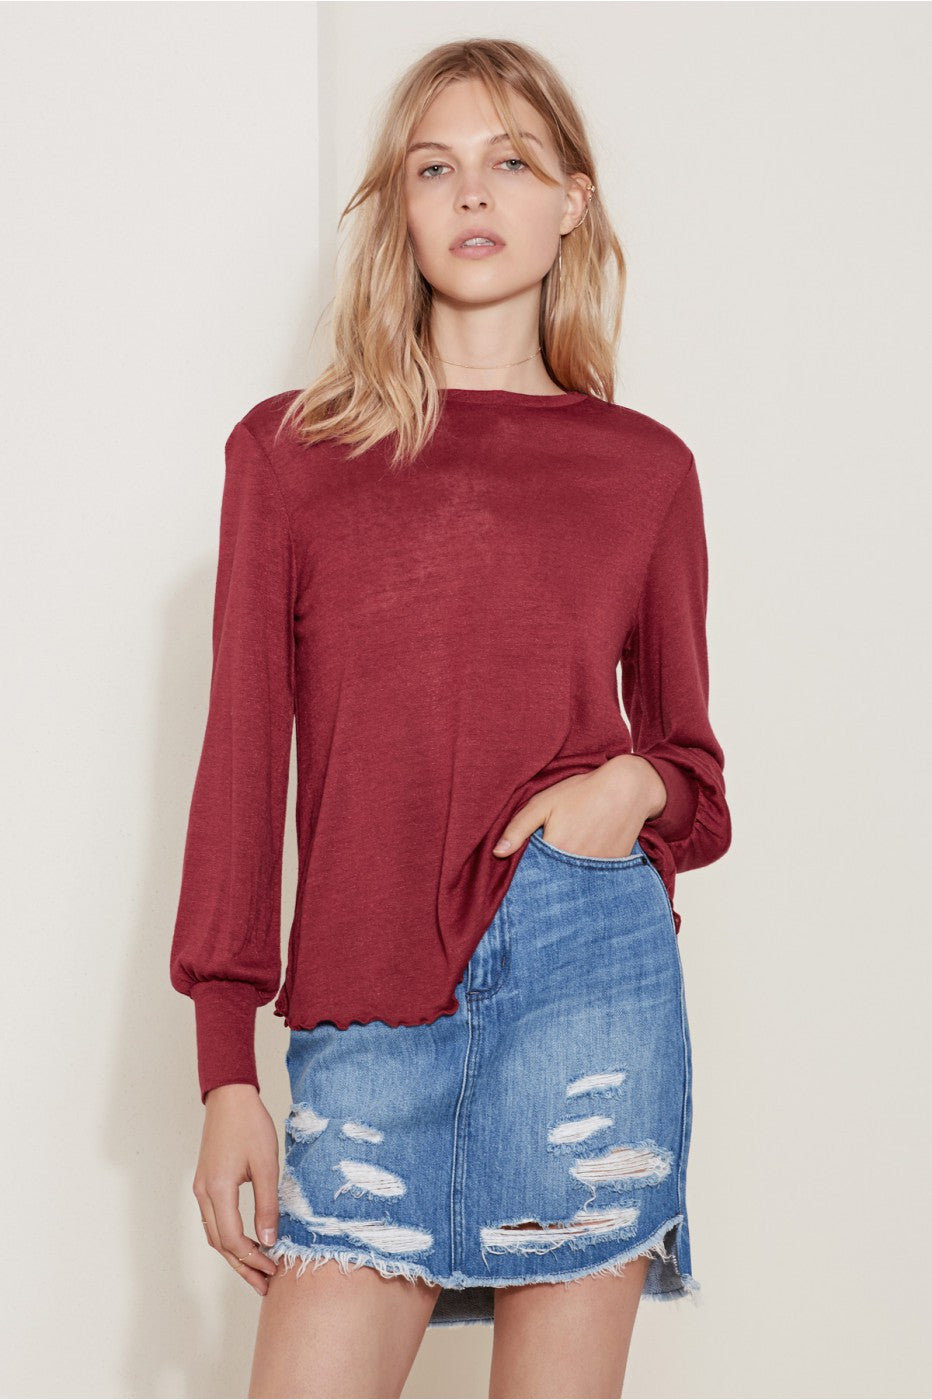 With Eyes Open Long Sleeve Top in Ruby - Sallyrose